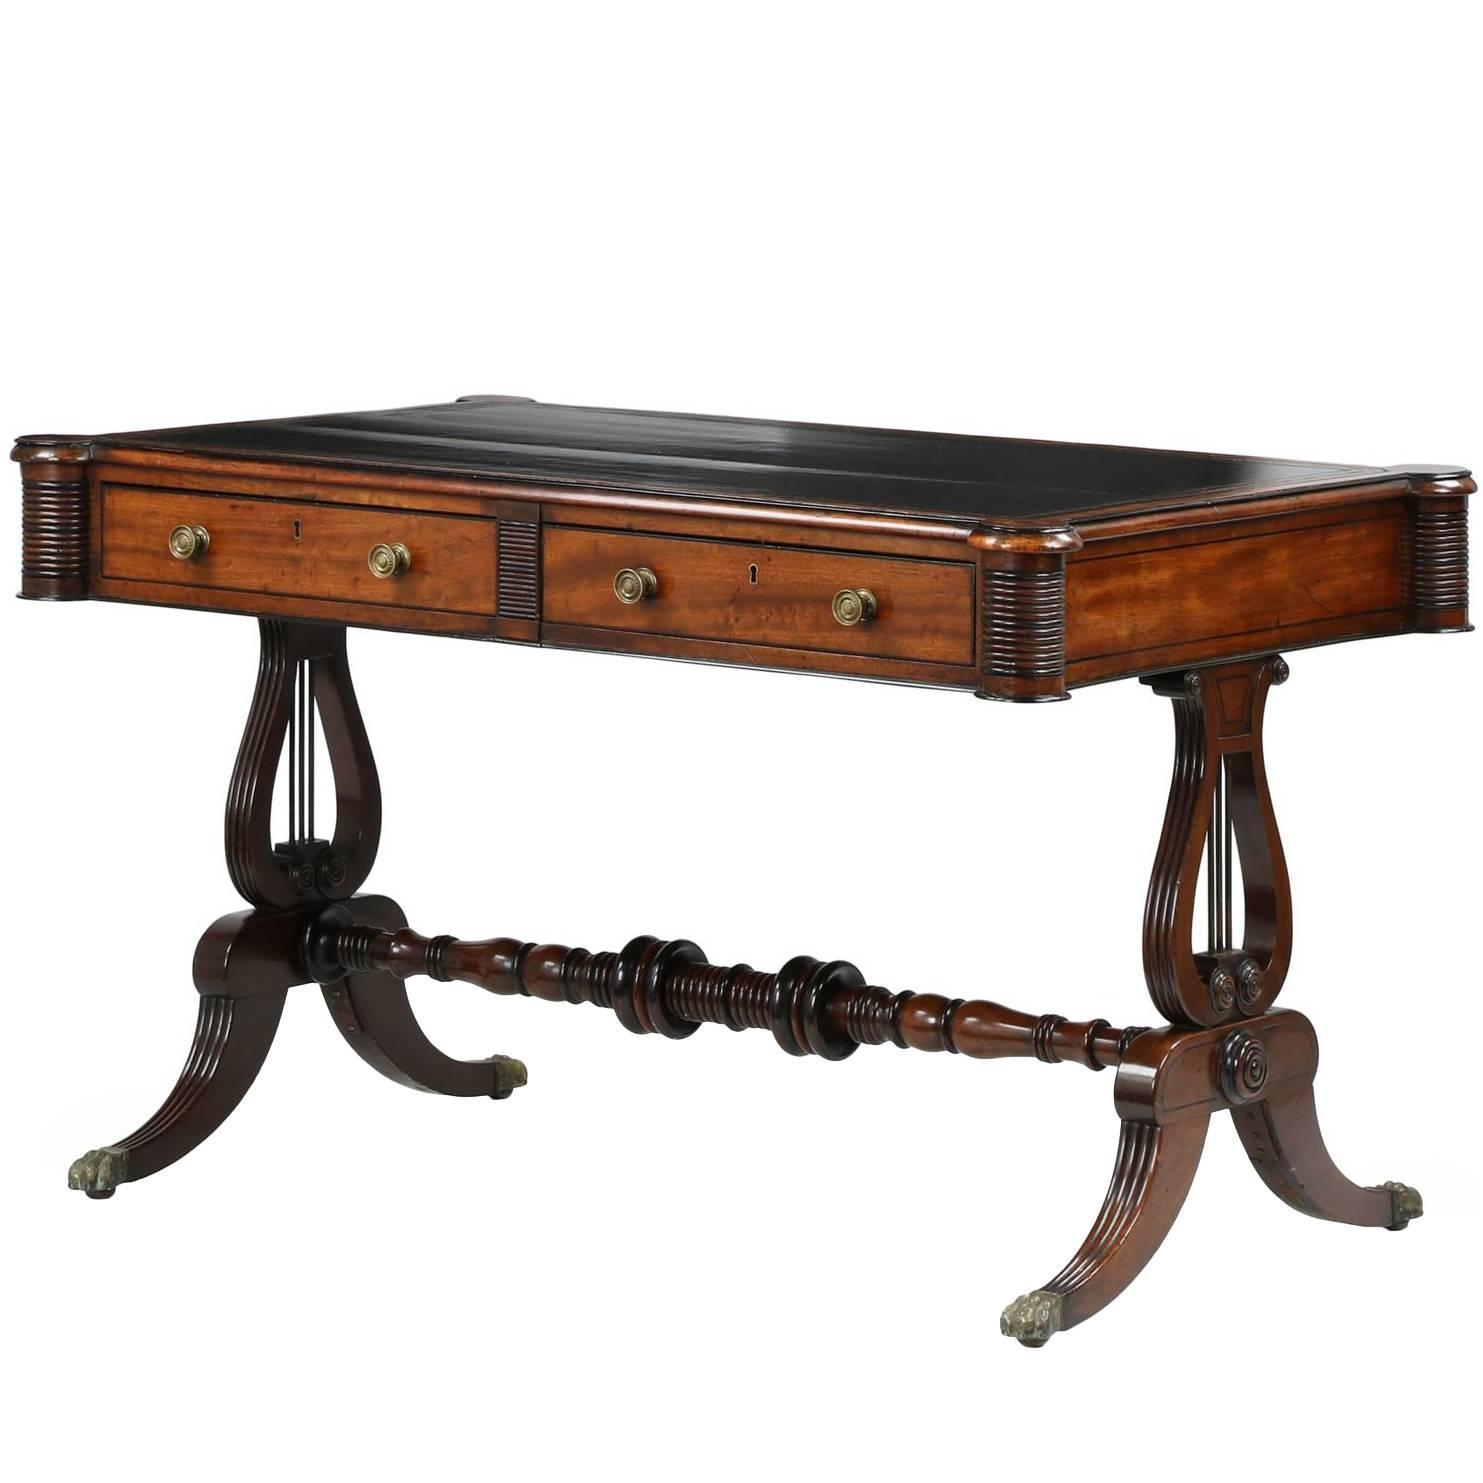 English William IV Mahogany Antique Writing Desk Table, circa 1830 at  1stdibs - English William IV Mahogany Antique Writing Desk Table, Circa 1830